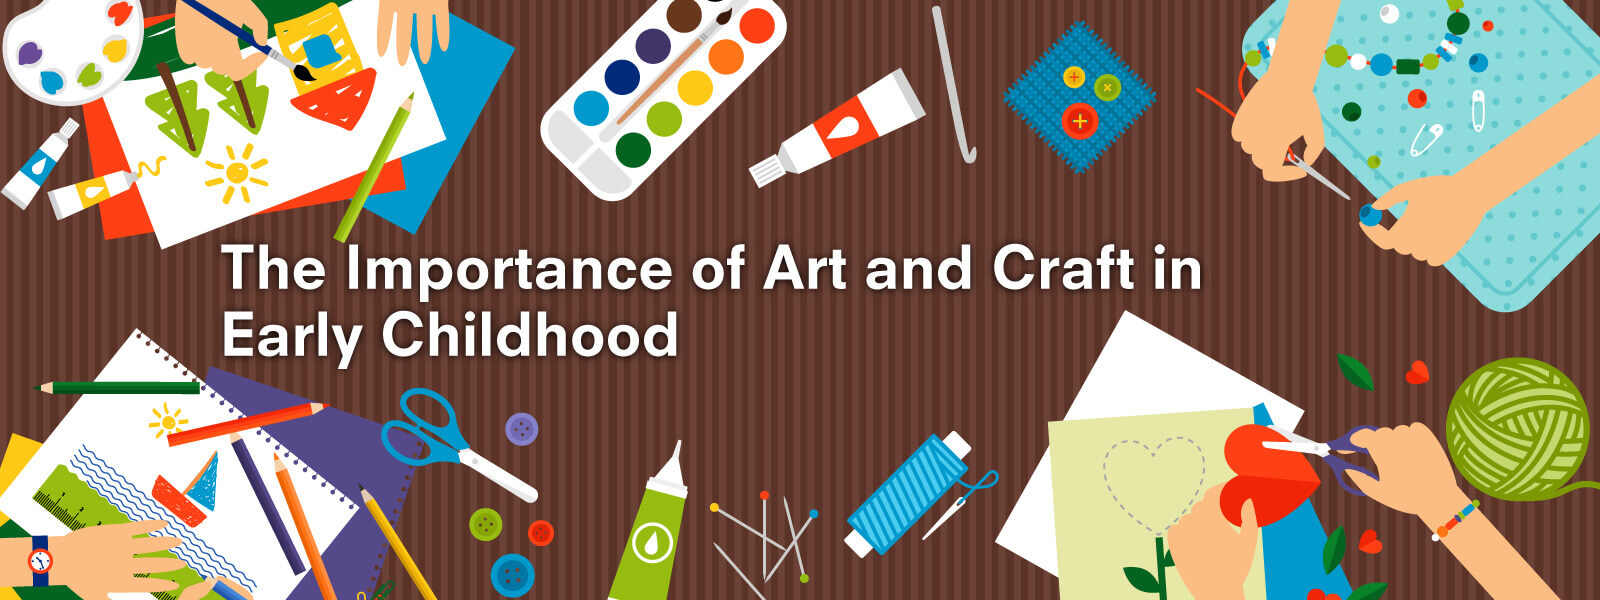 The Importance of Art and Craft in Early Childhood